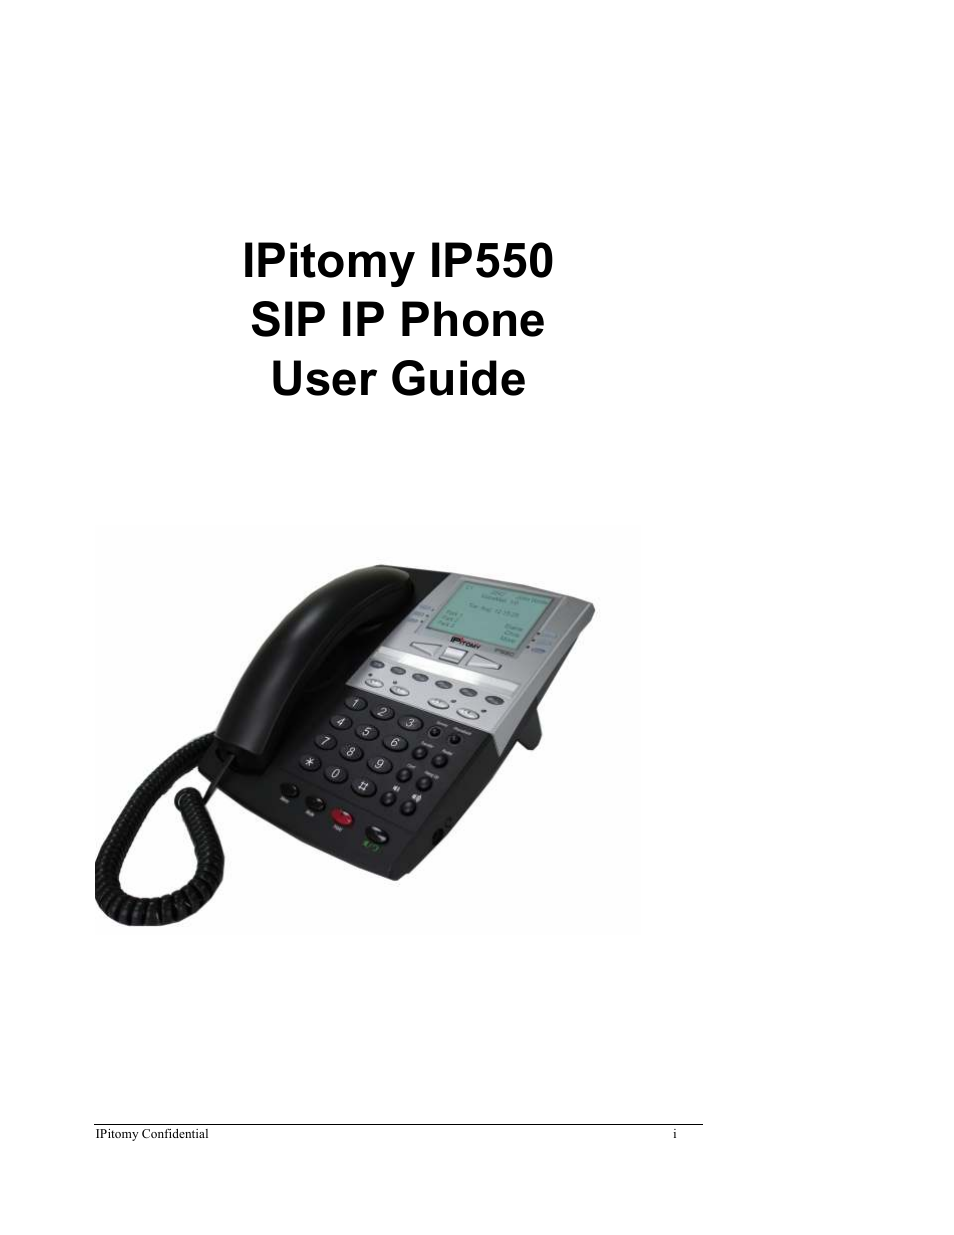 ipitomy ip550 user manual ver 1 user manual 117 pages rh manualsdir com Clip Art User Guide mitel 550 ip console user guide